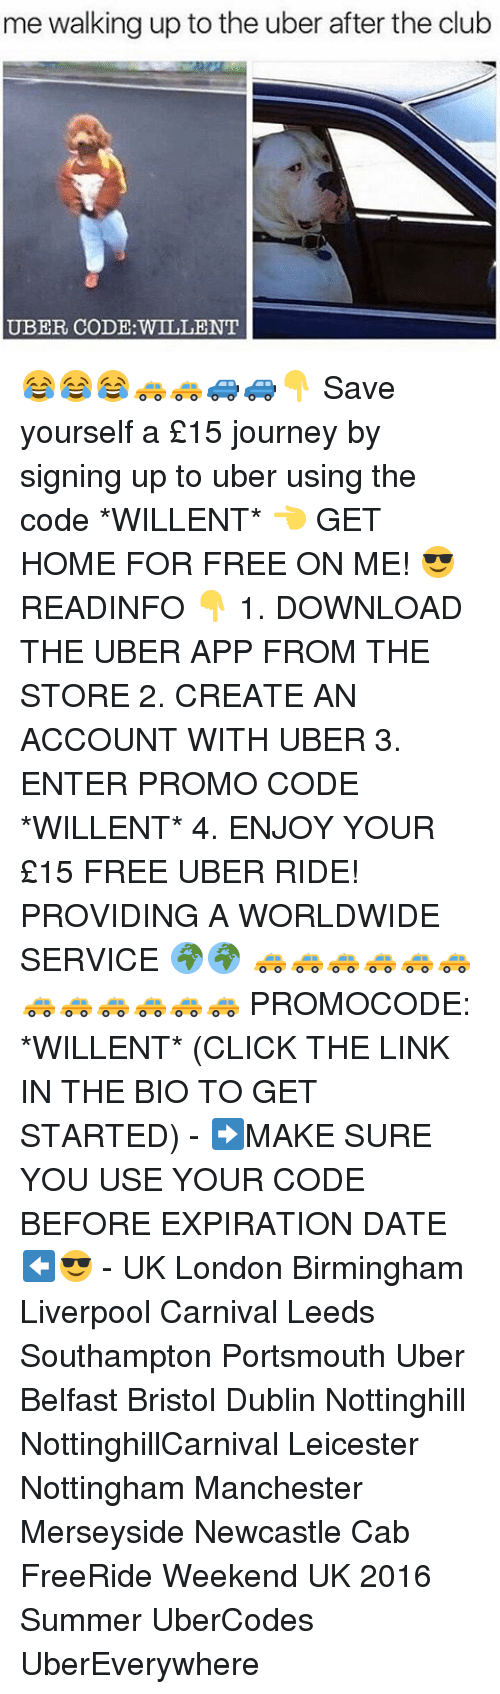 Journey, Memes, and Uber: me walking up to the uber after the club  UBER CODE WILLENT 😂😂😂🚕🚕🚙🚙👇 Save yourself a £15 journey by signing up to uber using the code *WILLENT* 👈 GET HOME FOR FREE ON ME! 😎 READINFO 👇 1. DOWNLOAD THE UBER APP FROM THE STORE 2. CREATE AN ACCOUNT WITH UBER 3. ENTER PROMO CODE *WILLENT* 4. ENJOY YOUR £15 FREE UBER RIDE! PROVIDING A WORLDWIDE SERVICE 🌍🌍 🚕🚕🚕🚕🚕🚕🚕🚕🚕🚕🚕🚕 PROMOCODE: *WILLENT* (CLICK THE LINK IN THE BIO TO GET STARTED) - ➡️MAKE SURE YOU USE YOUR CODE BEFORE EXPIRATION DATE ⬅️😎 - UK London Birmingham Liverpool Carnival Leeds Southampton Portsmouth Uber Belfast Bristol Dublin Nottinghill NottinghillCarnival Leicester Nottingham Manchester Merseyside Newcastle Cab FreeRide Weekend UK 2016 Summer UberCodes UberEverywhere